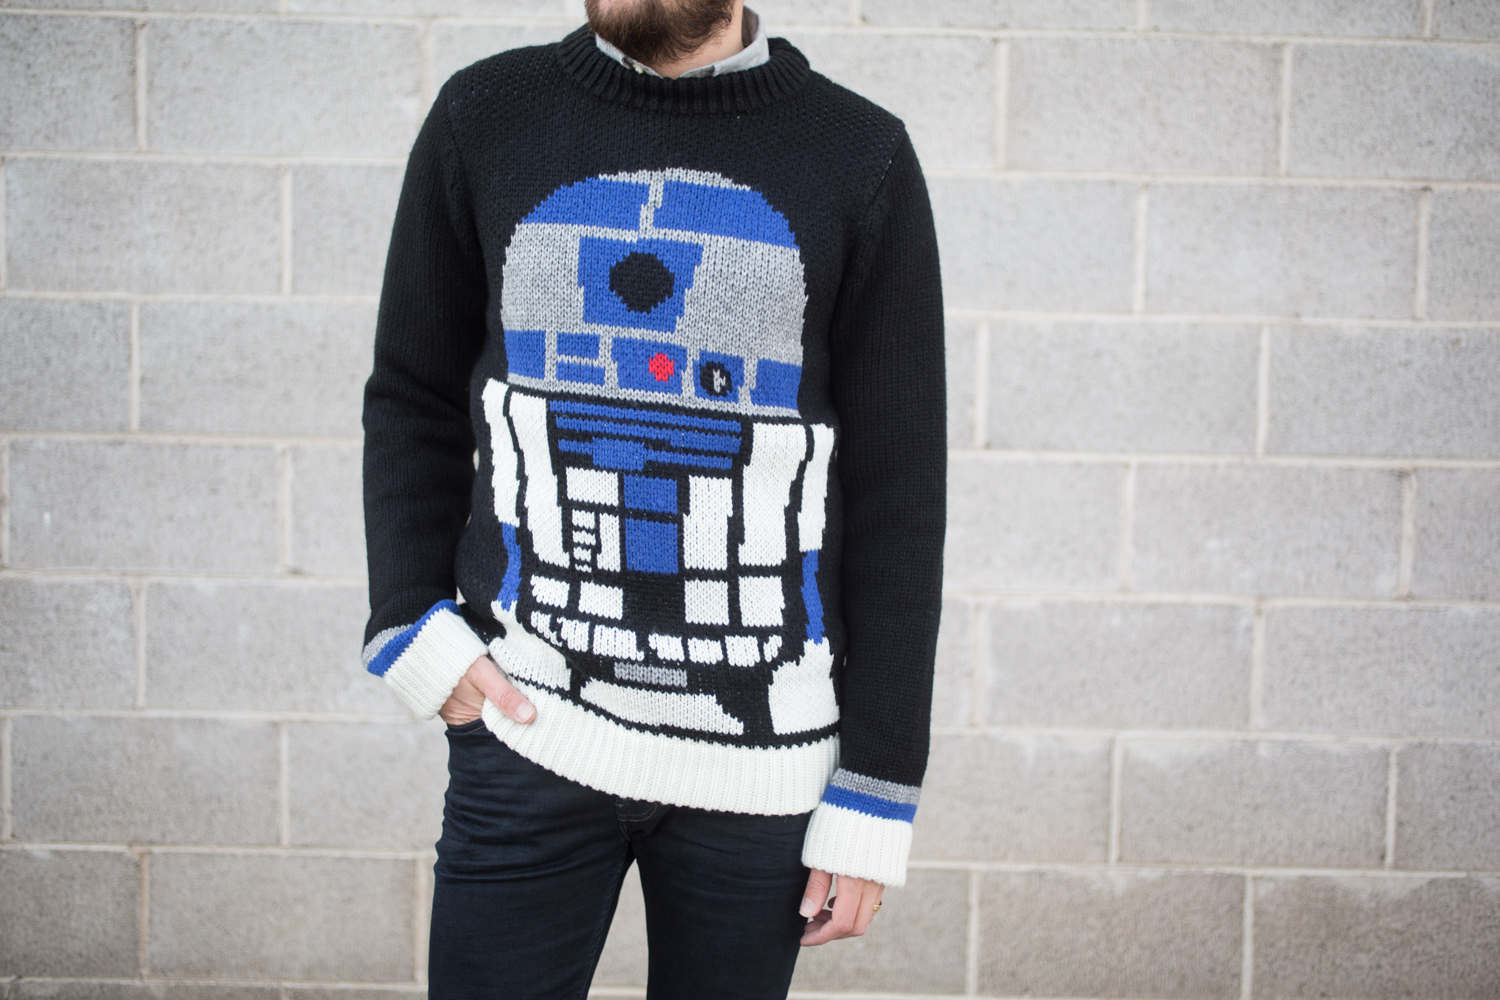 Elevnises r2d2 Star Wars sweater from Revolve clothing